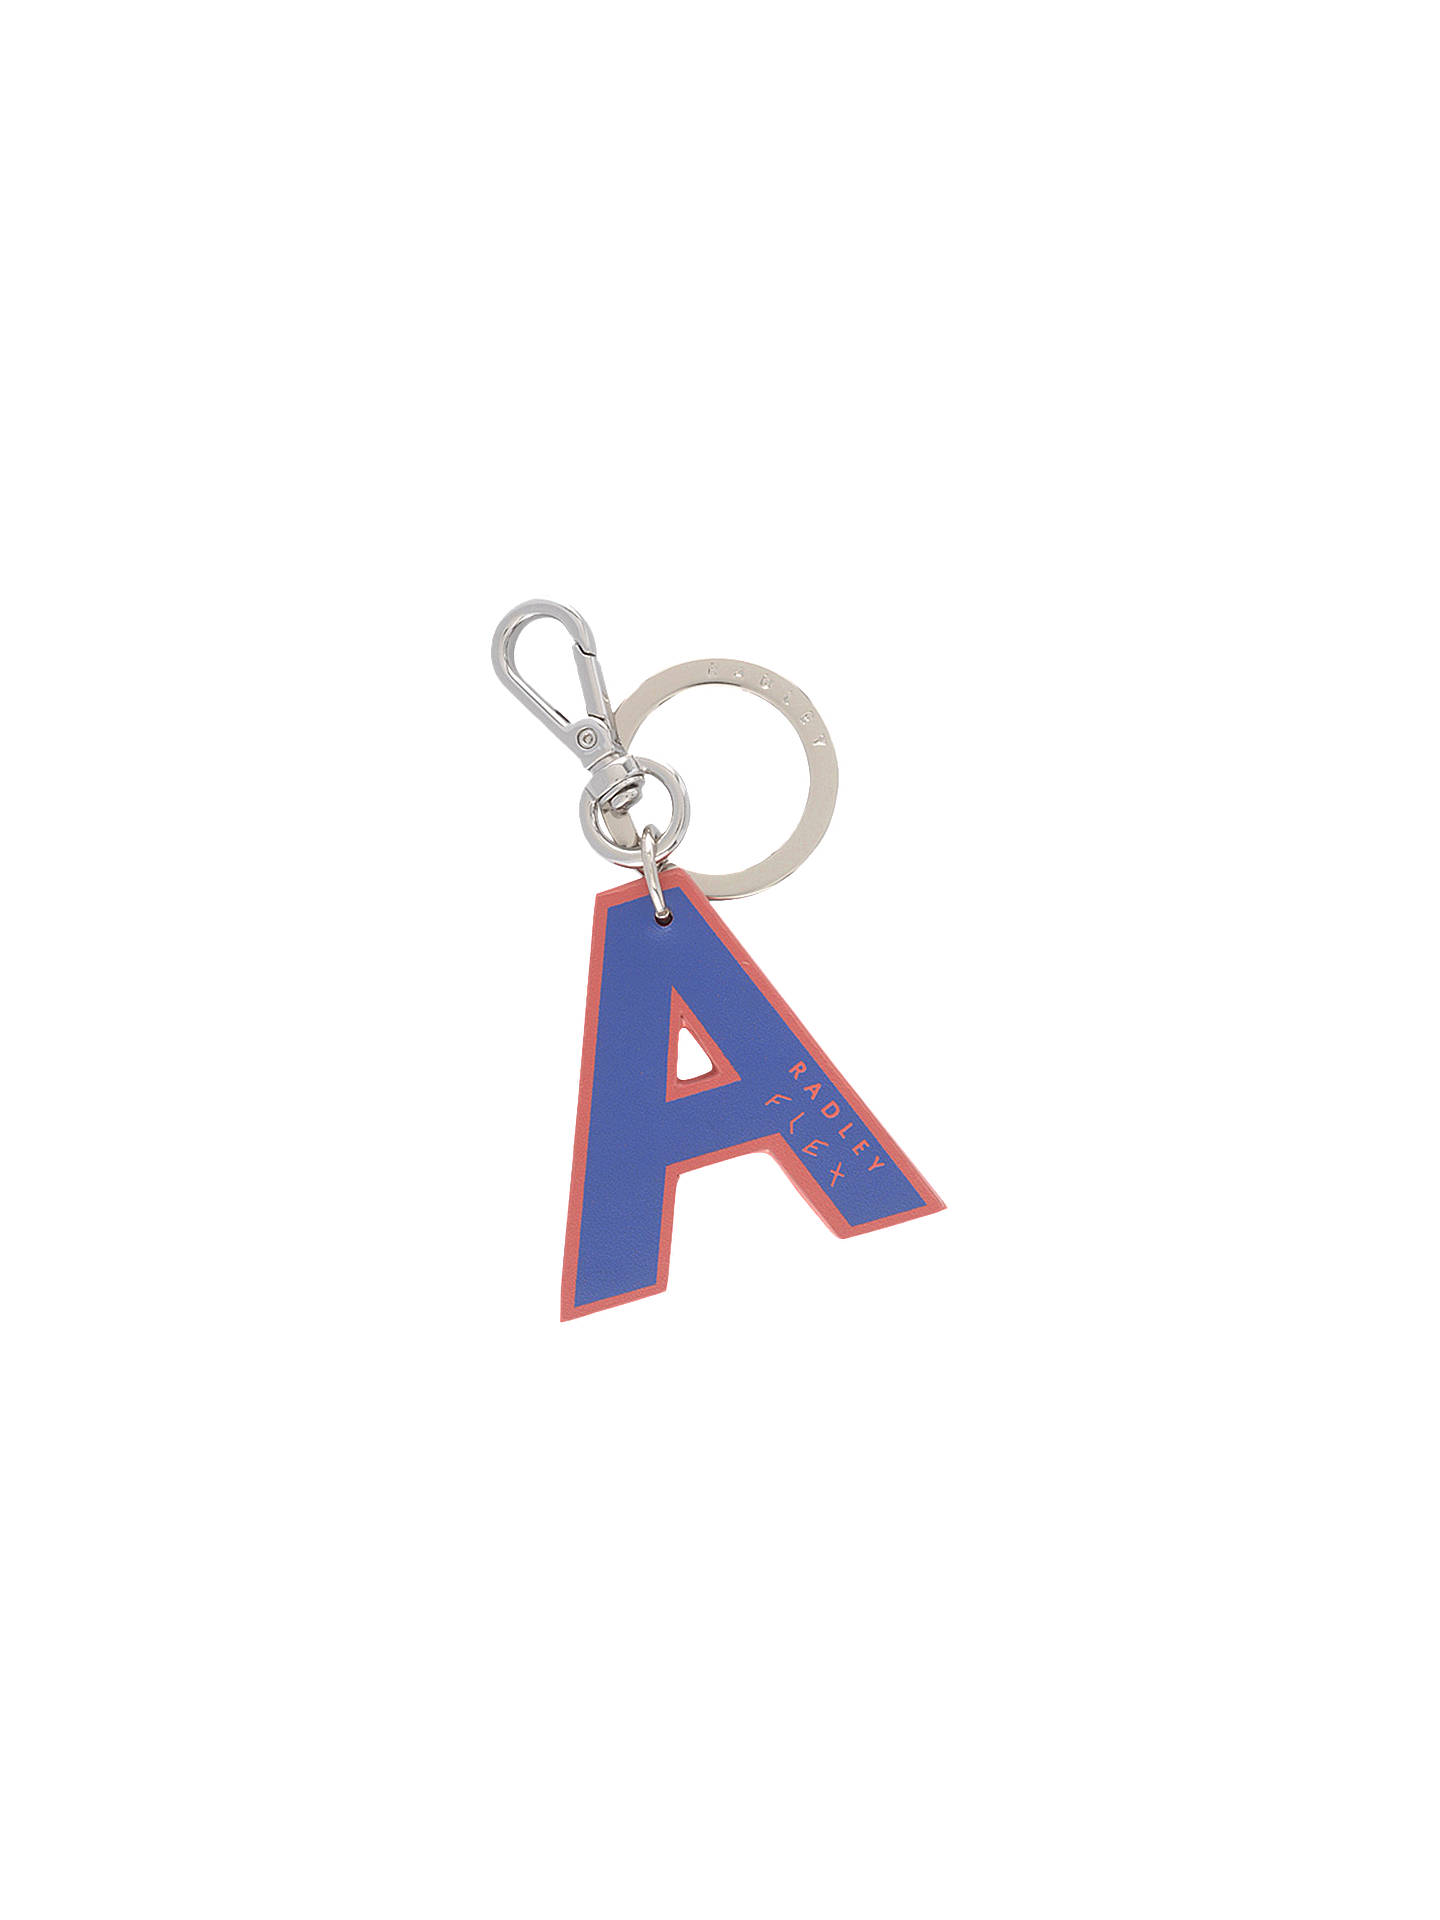 Buy Radley Flex Letters Small Bag Charm, Blue A Online at johnlewis.com